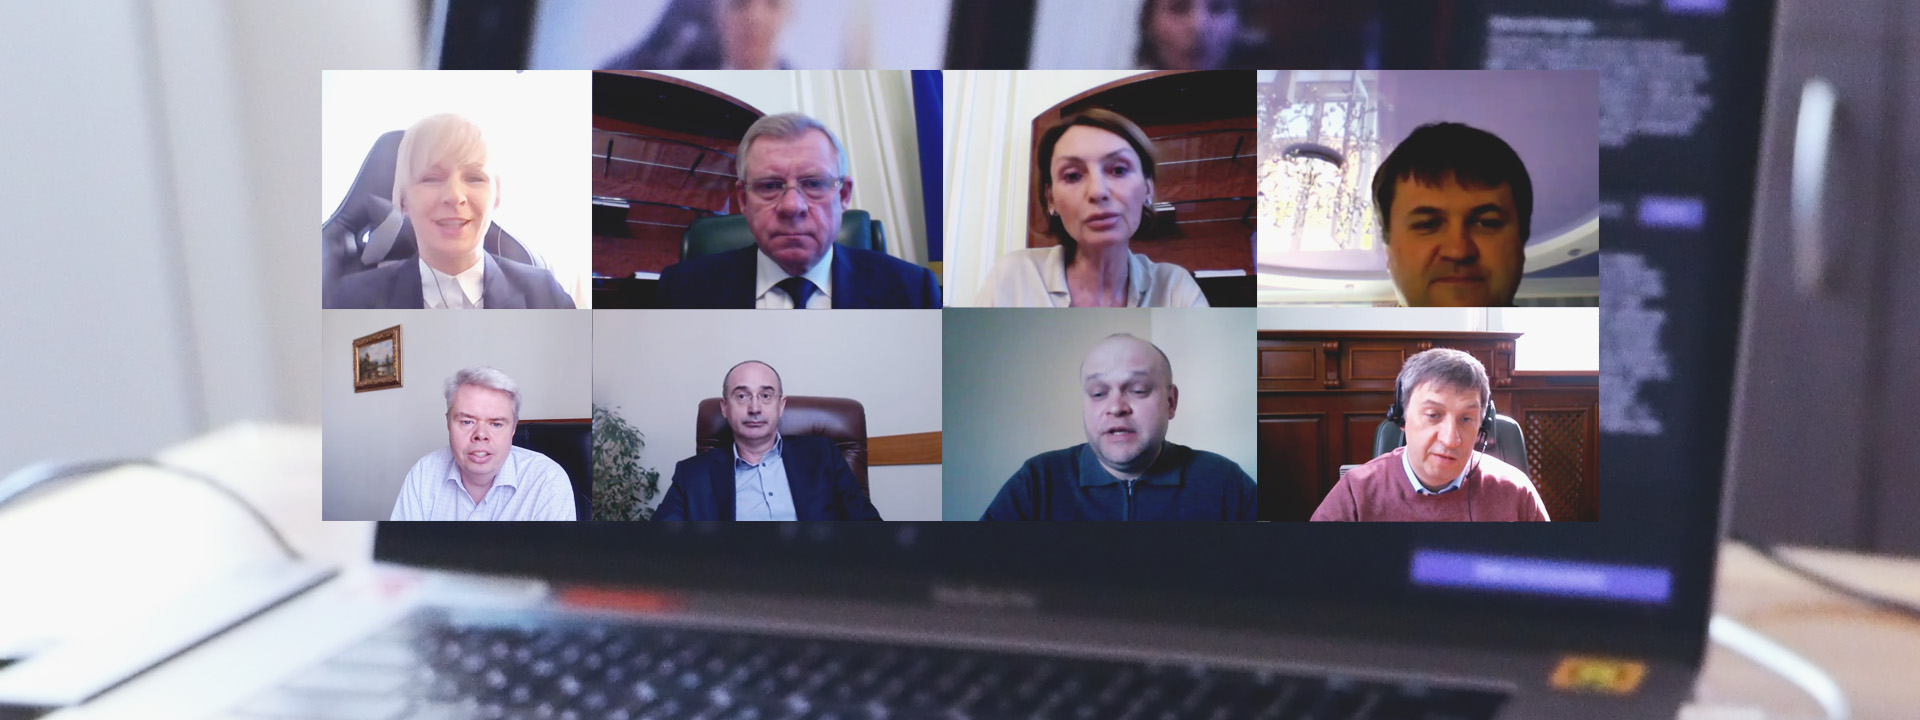 Online Meeting with the Board of the National Bank of Ukraine